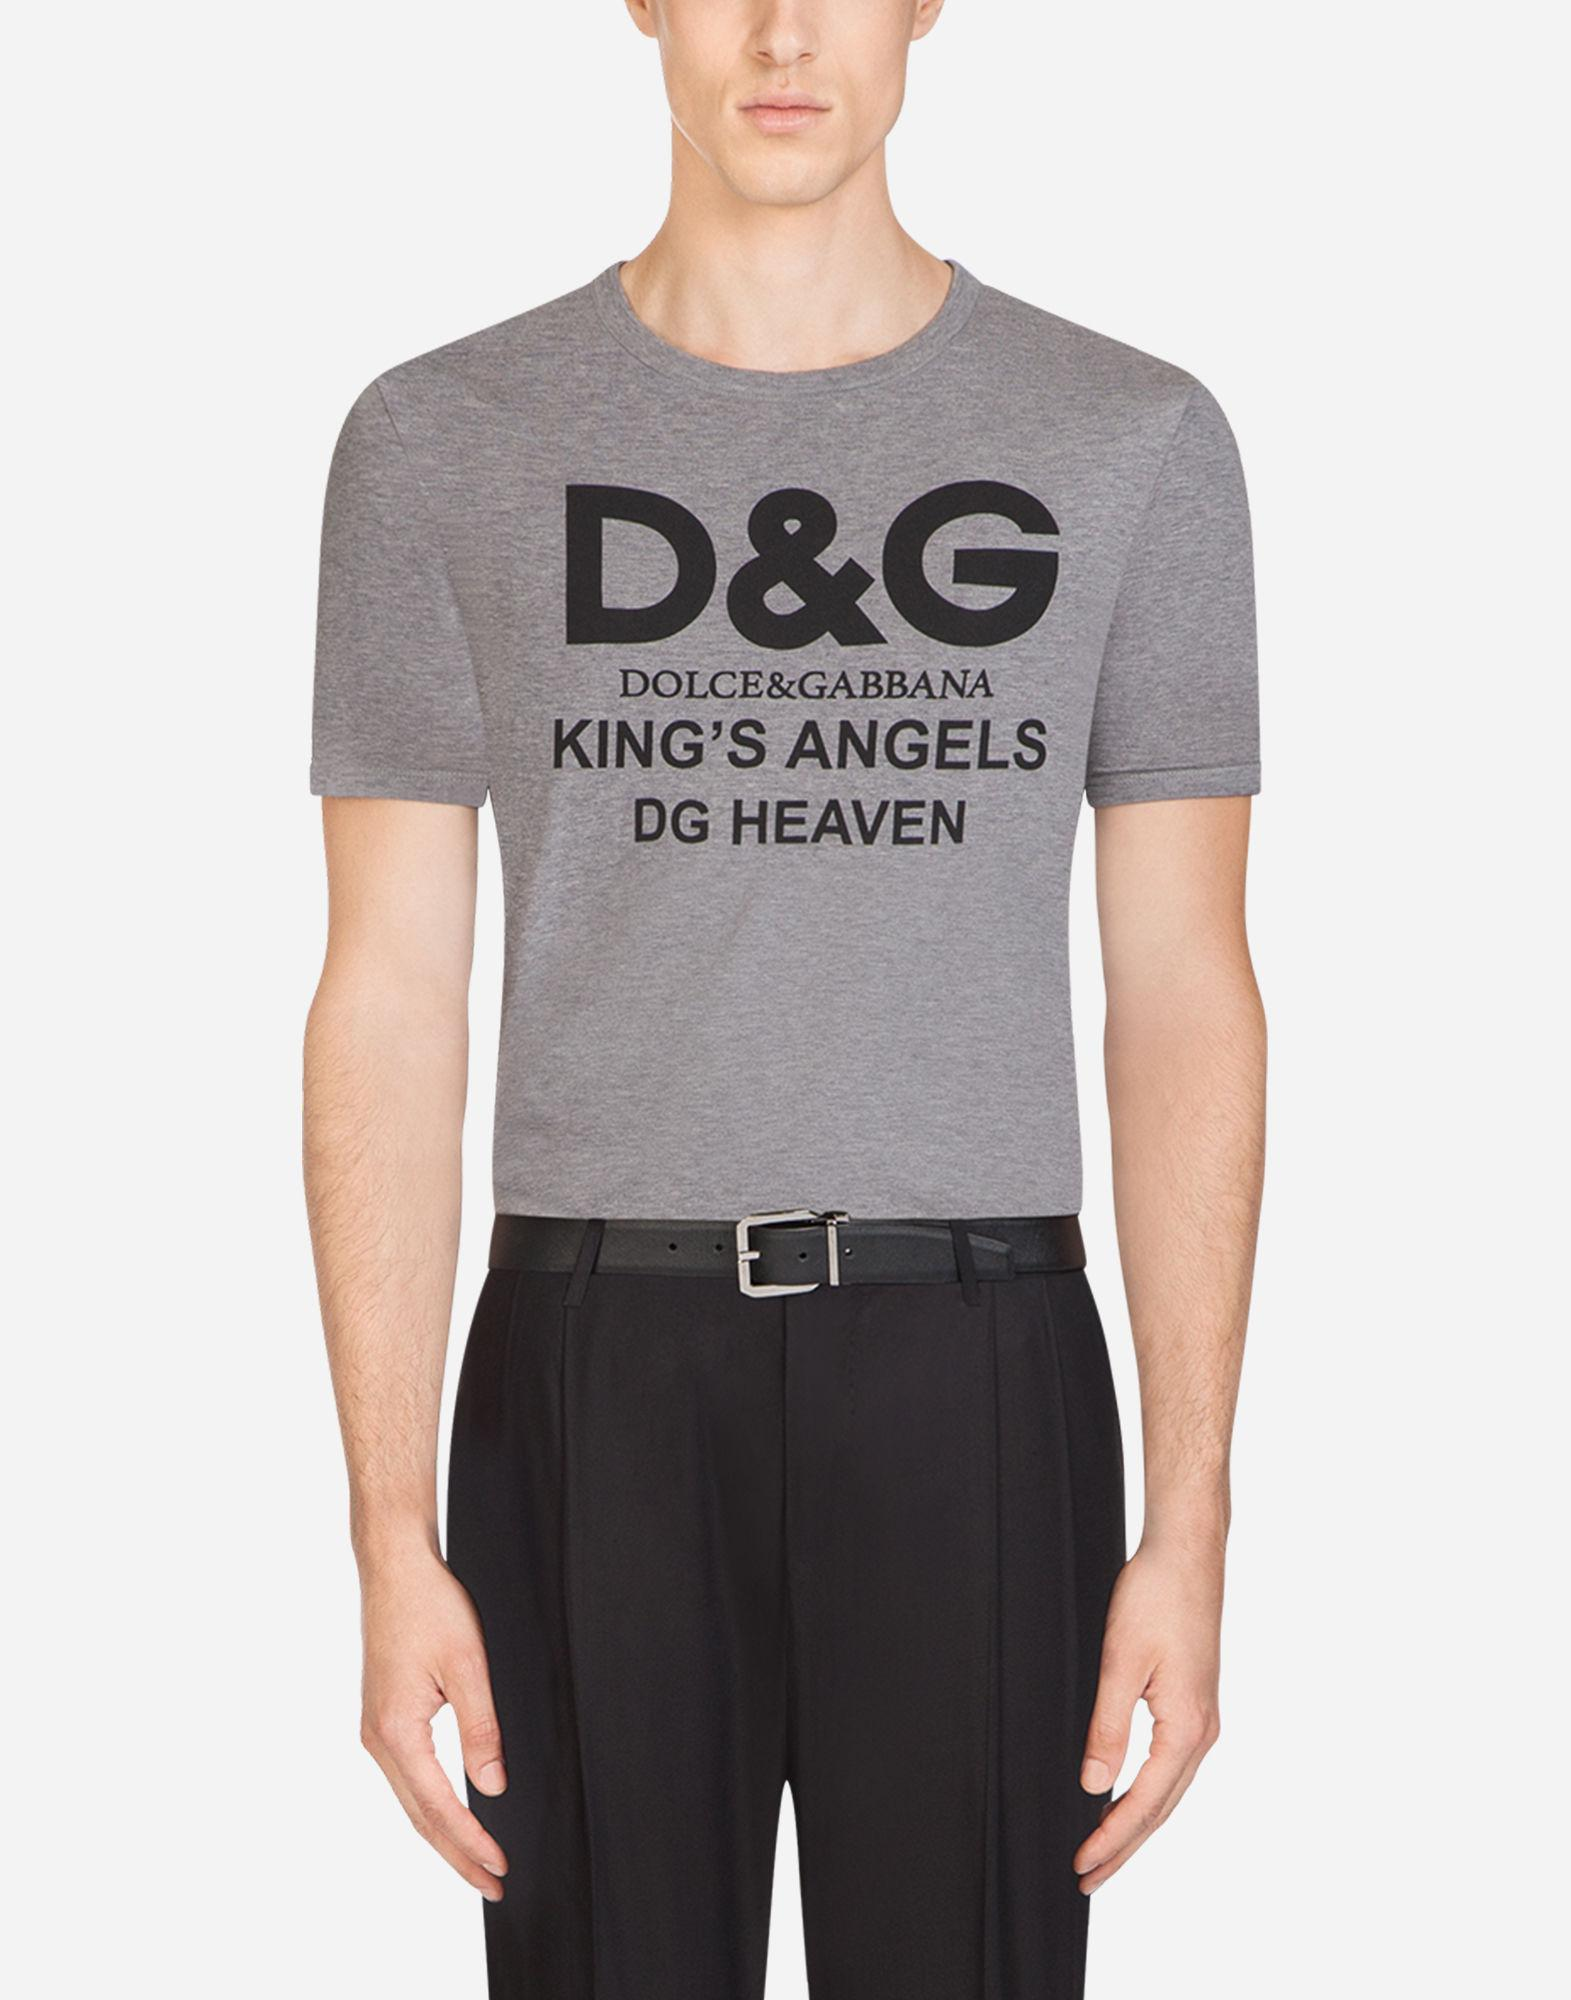 974d520ed Lyst - Dolce & Gabbana Cotton T-shirt With D&g Print in Gray for Men